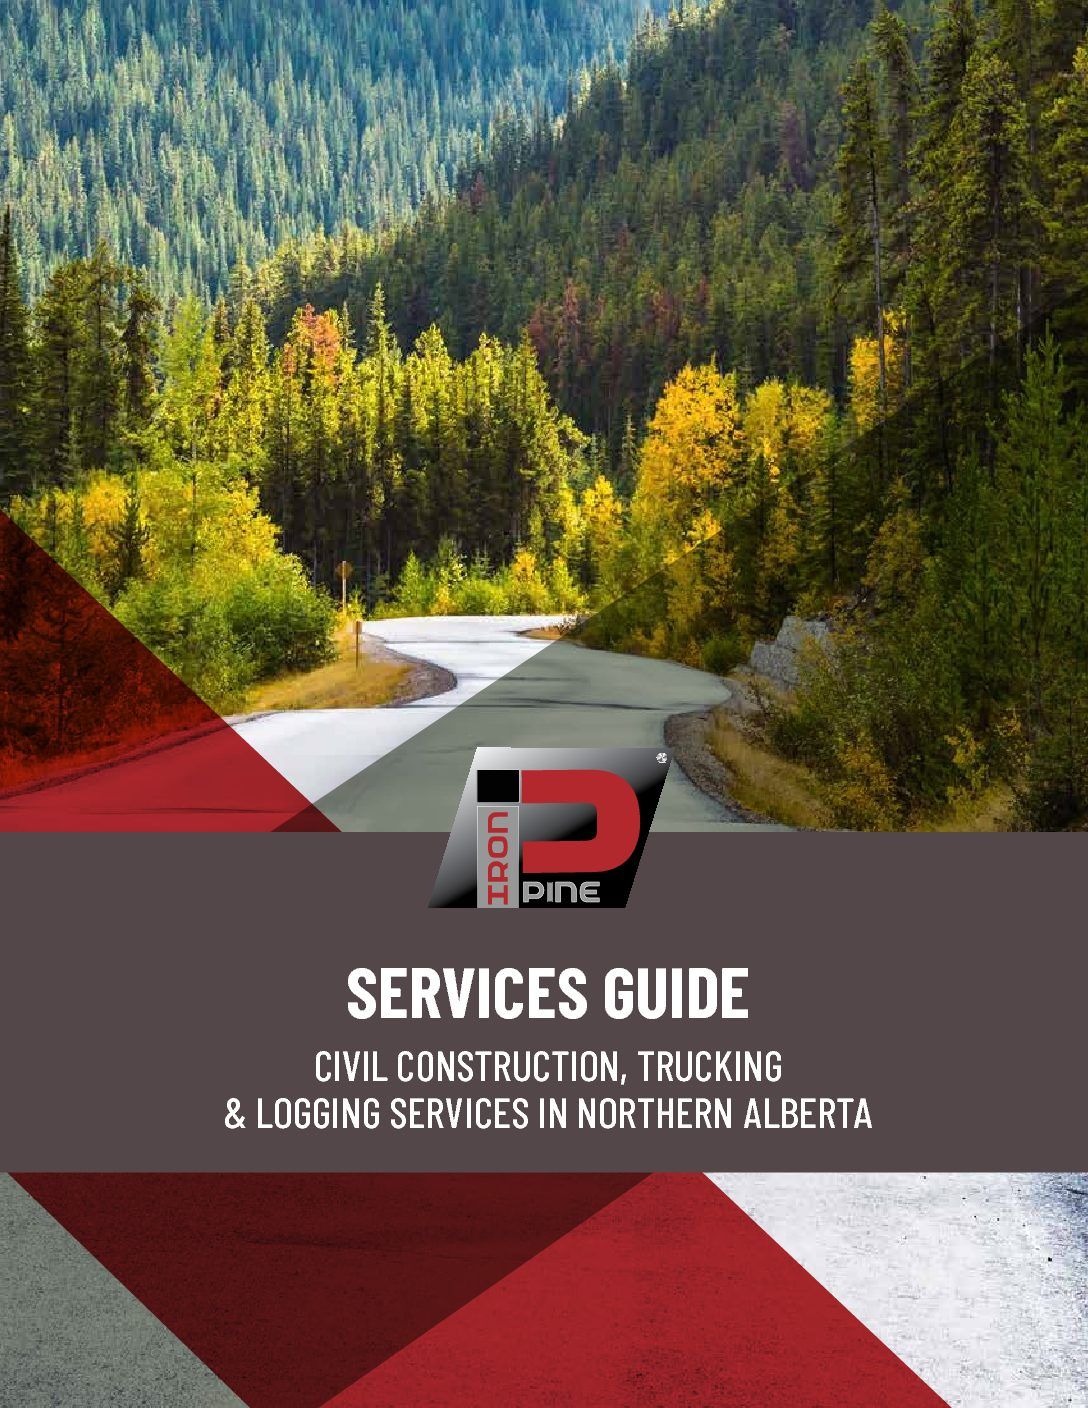 Iron Pine Services Guide